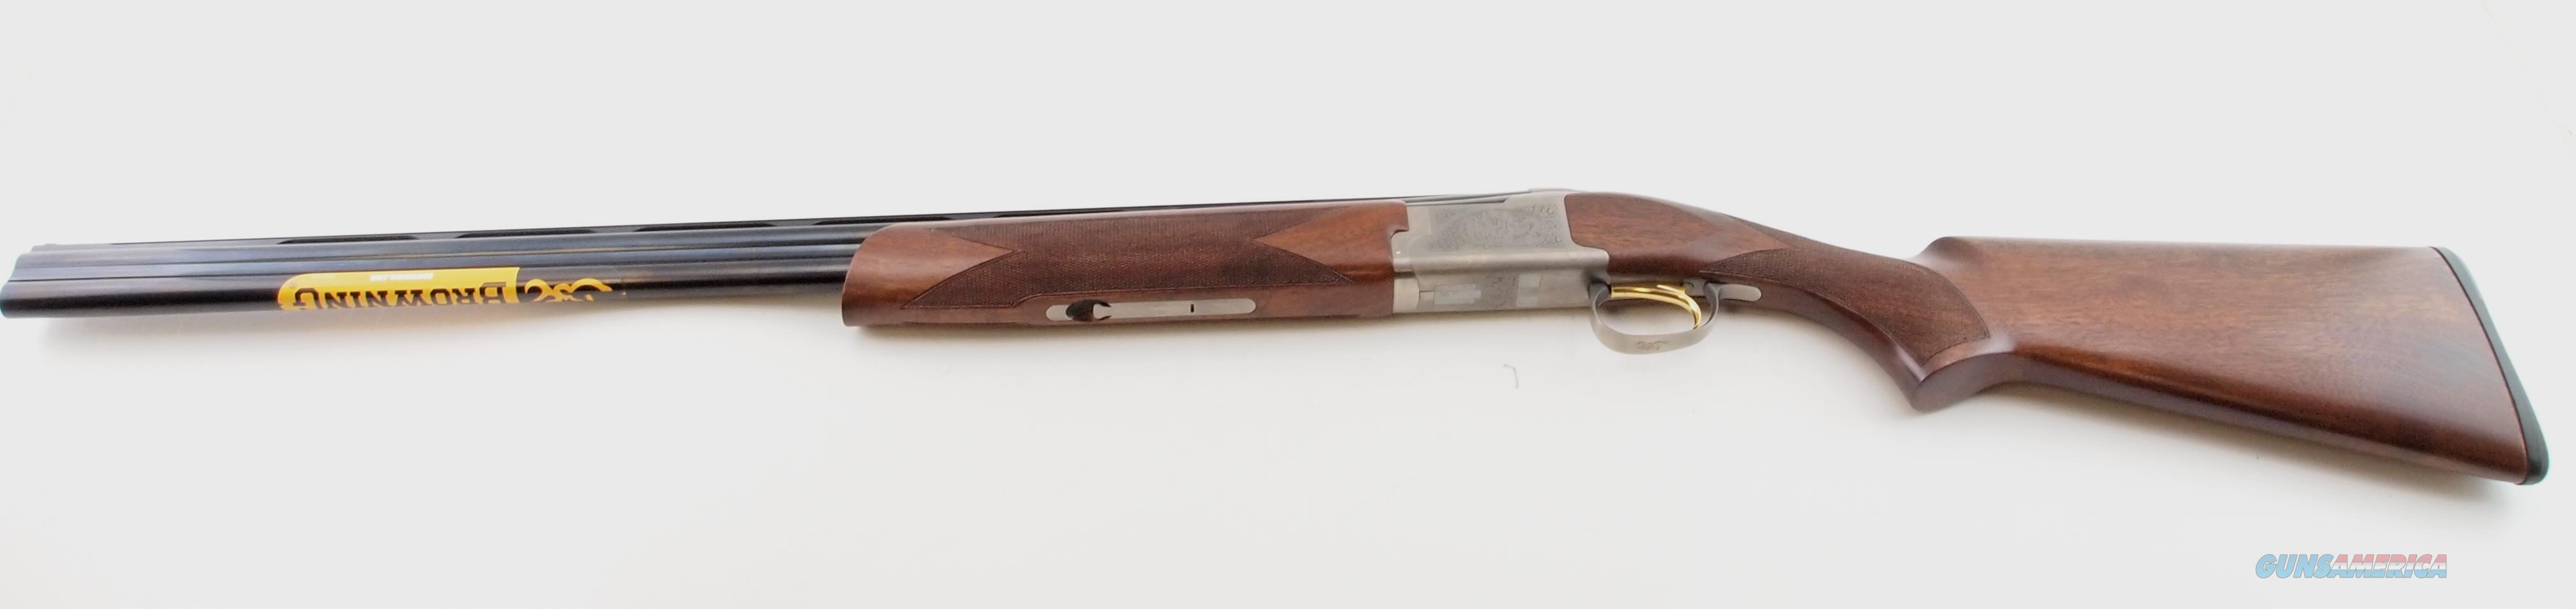 BROWNING 725 28GA FIELD, NIB  Guns > Shotguns > Browning Shotguns > Over Unders > Citori > Hunting